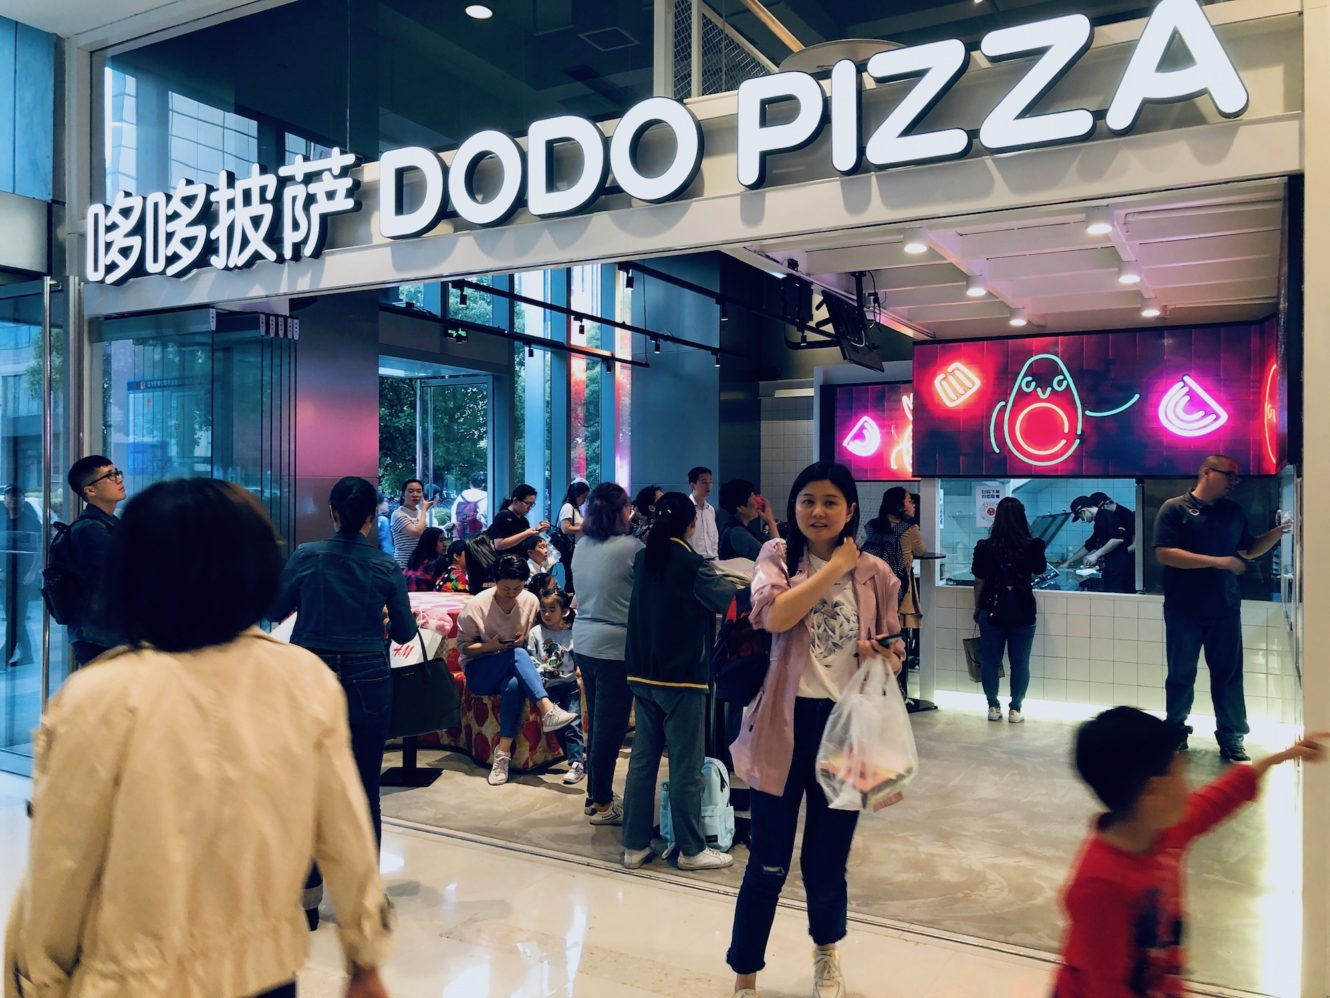 Dodo Pizza in Hangzhou: Day 5